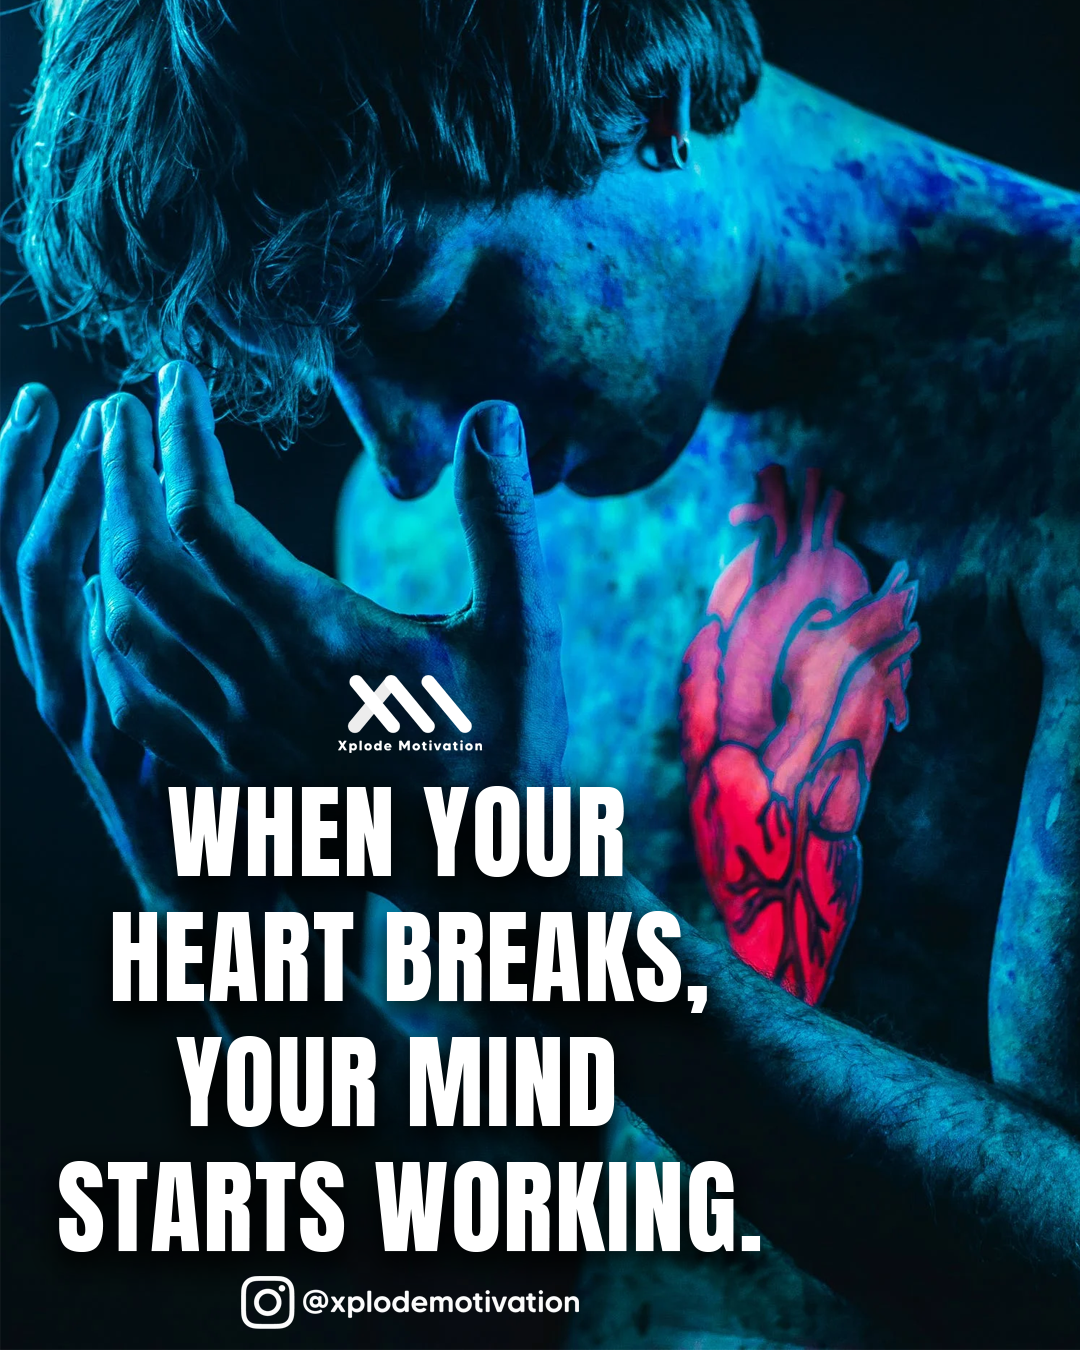 Follow @xplodemotivation for best motivation and inspiration quotes  @xplodemotivation 🔥 @xplodemotivation 💯  📷 Background Image credits to respective owner. DM for copyright.  #entrepreneurquotes #millionairemindset #keytosuccess #motivational #motivationalquotes #lifequotes #successquotes #inspirationalquotes #inspiringquotes #workhard #nevergiveup #successtips #millionaireprocess